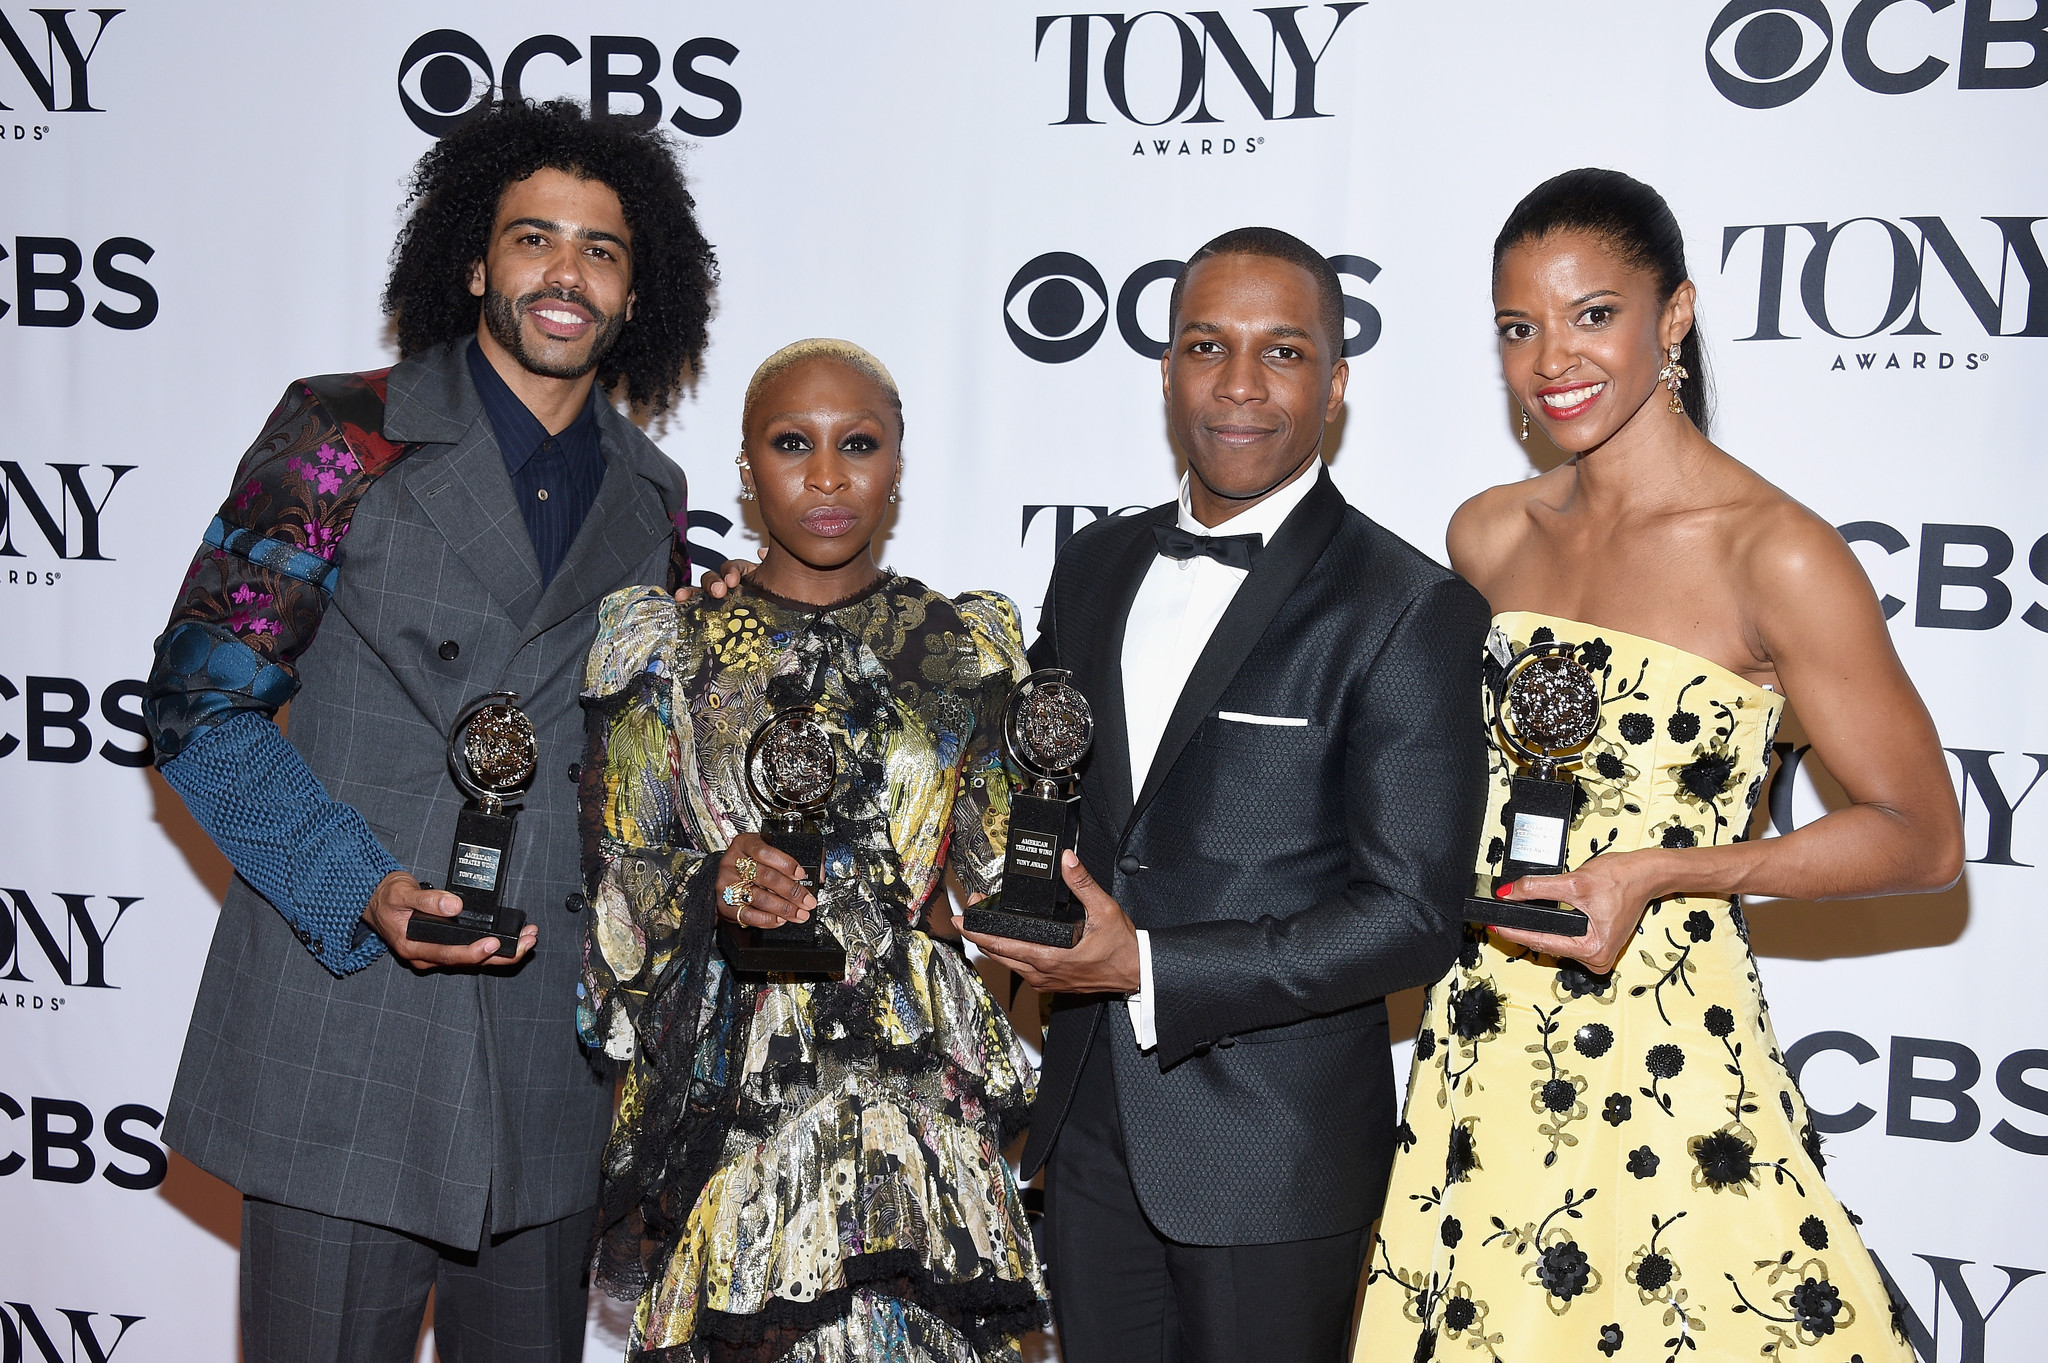 Actors Daveed Diggs, Cynthia Erivo, Leslie Odom, Jr. and Renee Elise Goldsberry pose with awards during the 70th Annual Tony Awards at The Beacon Theatre on June 12 in New York City. (Dimitrios Kambouris / Getty Images for Tony Awards Productions)